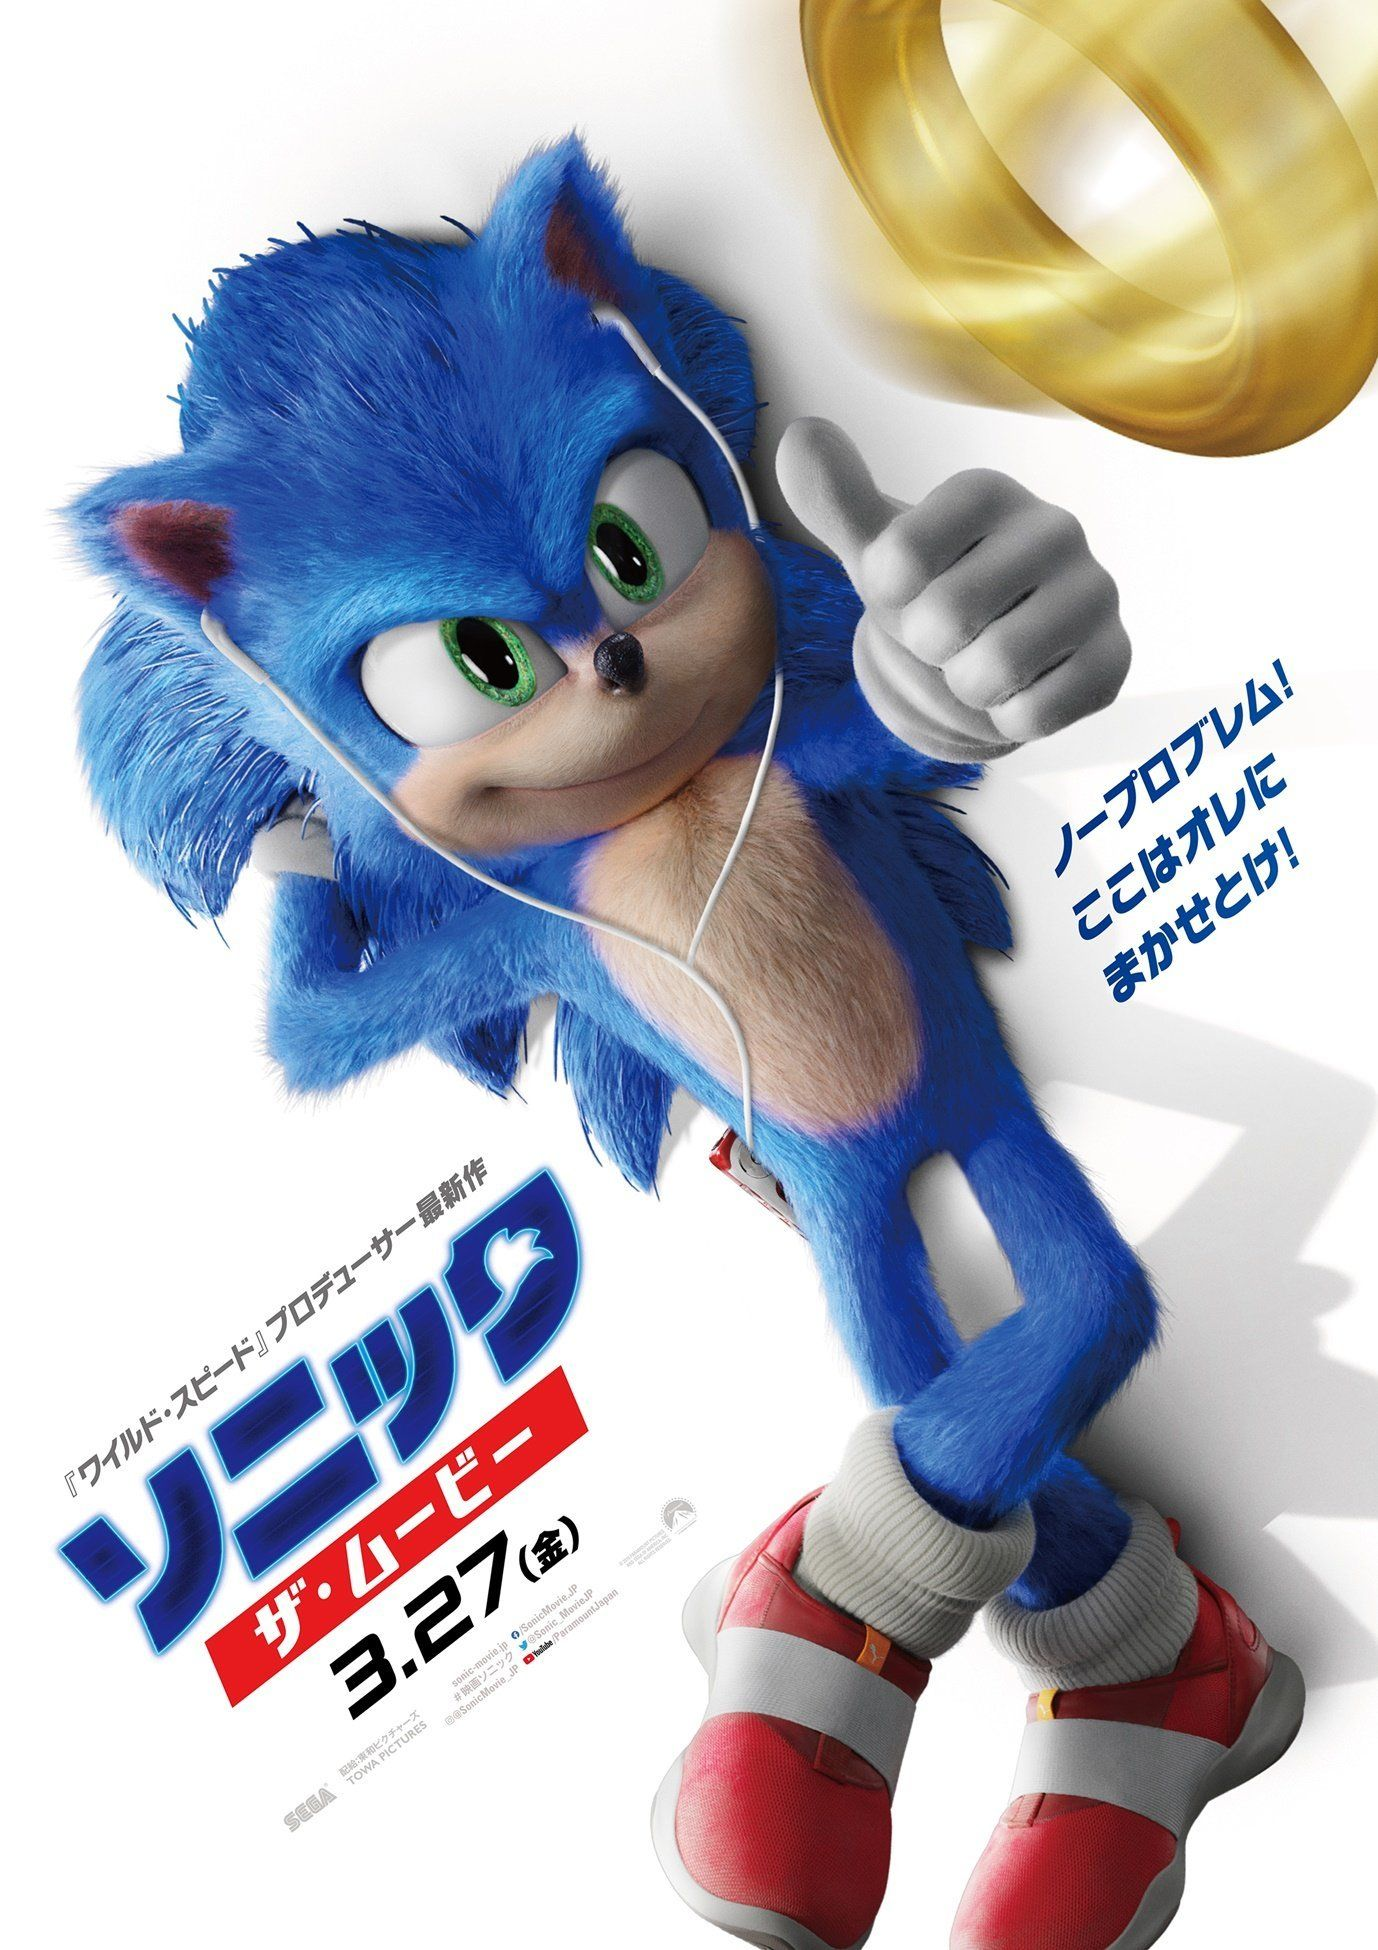 Tails Channel Sonic The Hedgehog News Updates On Twitter Sonic The Movie Hedgehog Movie Sonic